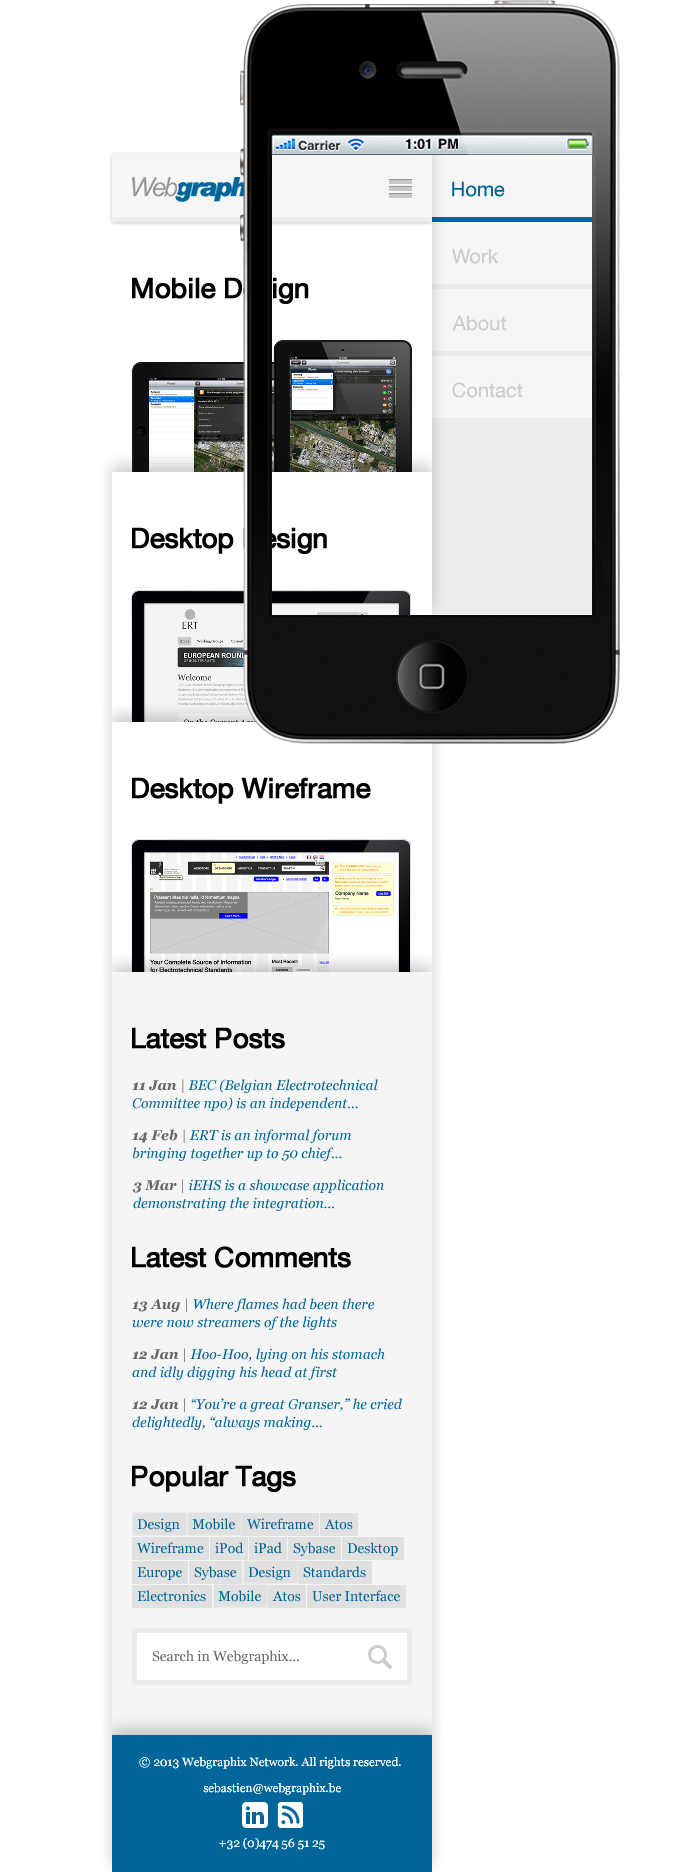 Webgraphix Network - Mobile-First Mockup - Homepage (Portrait)